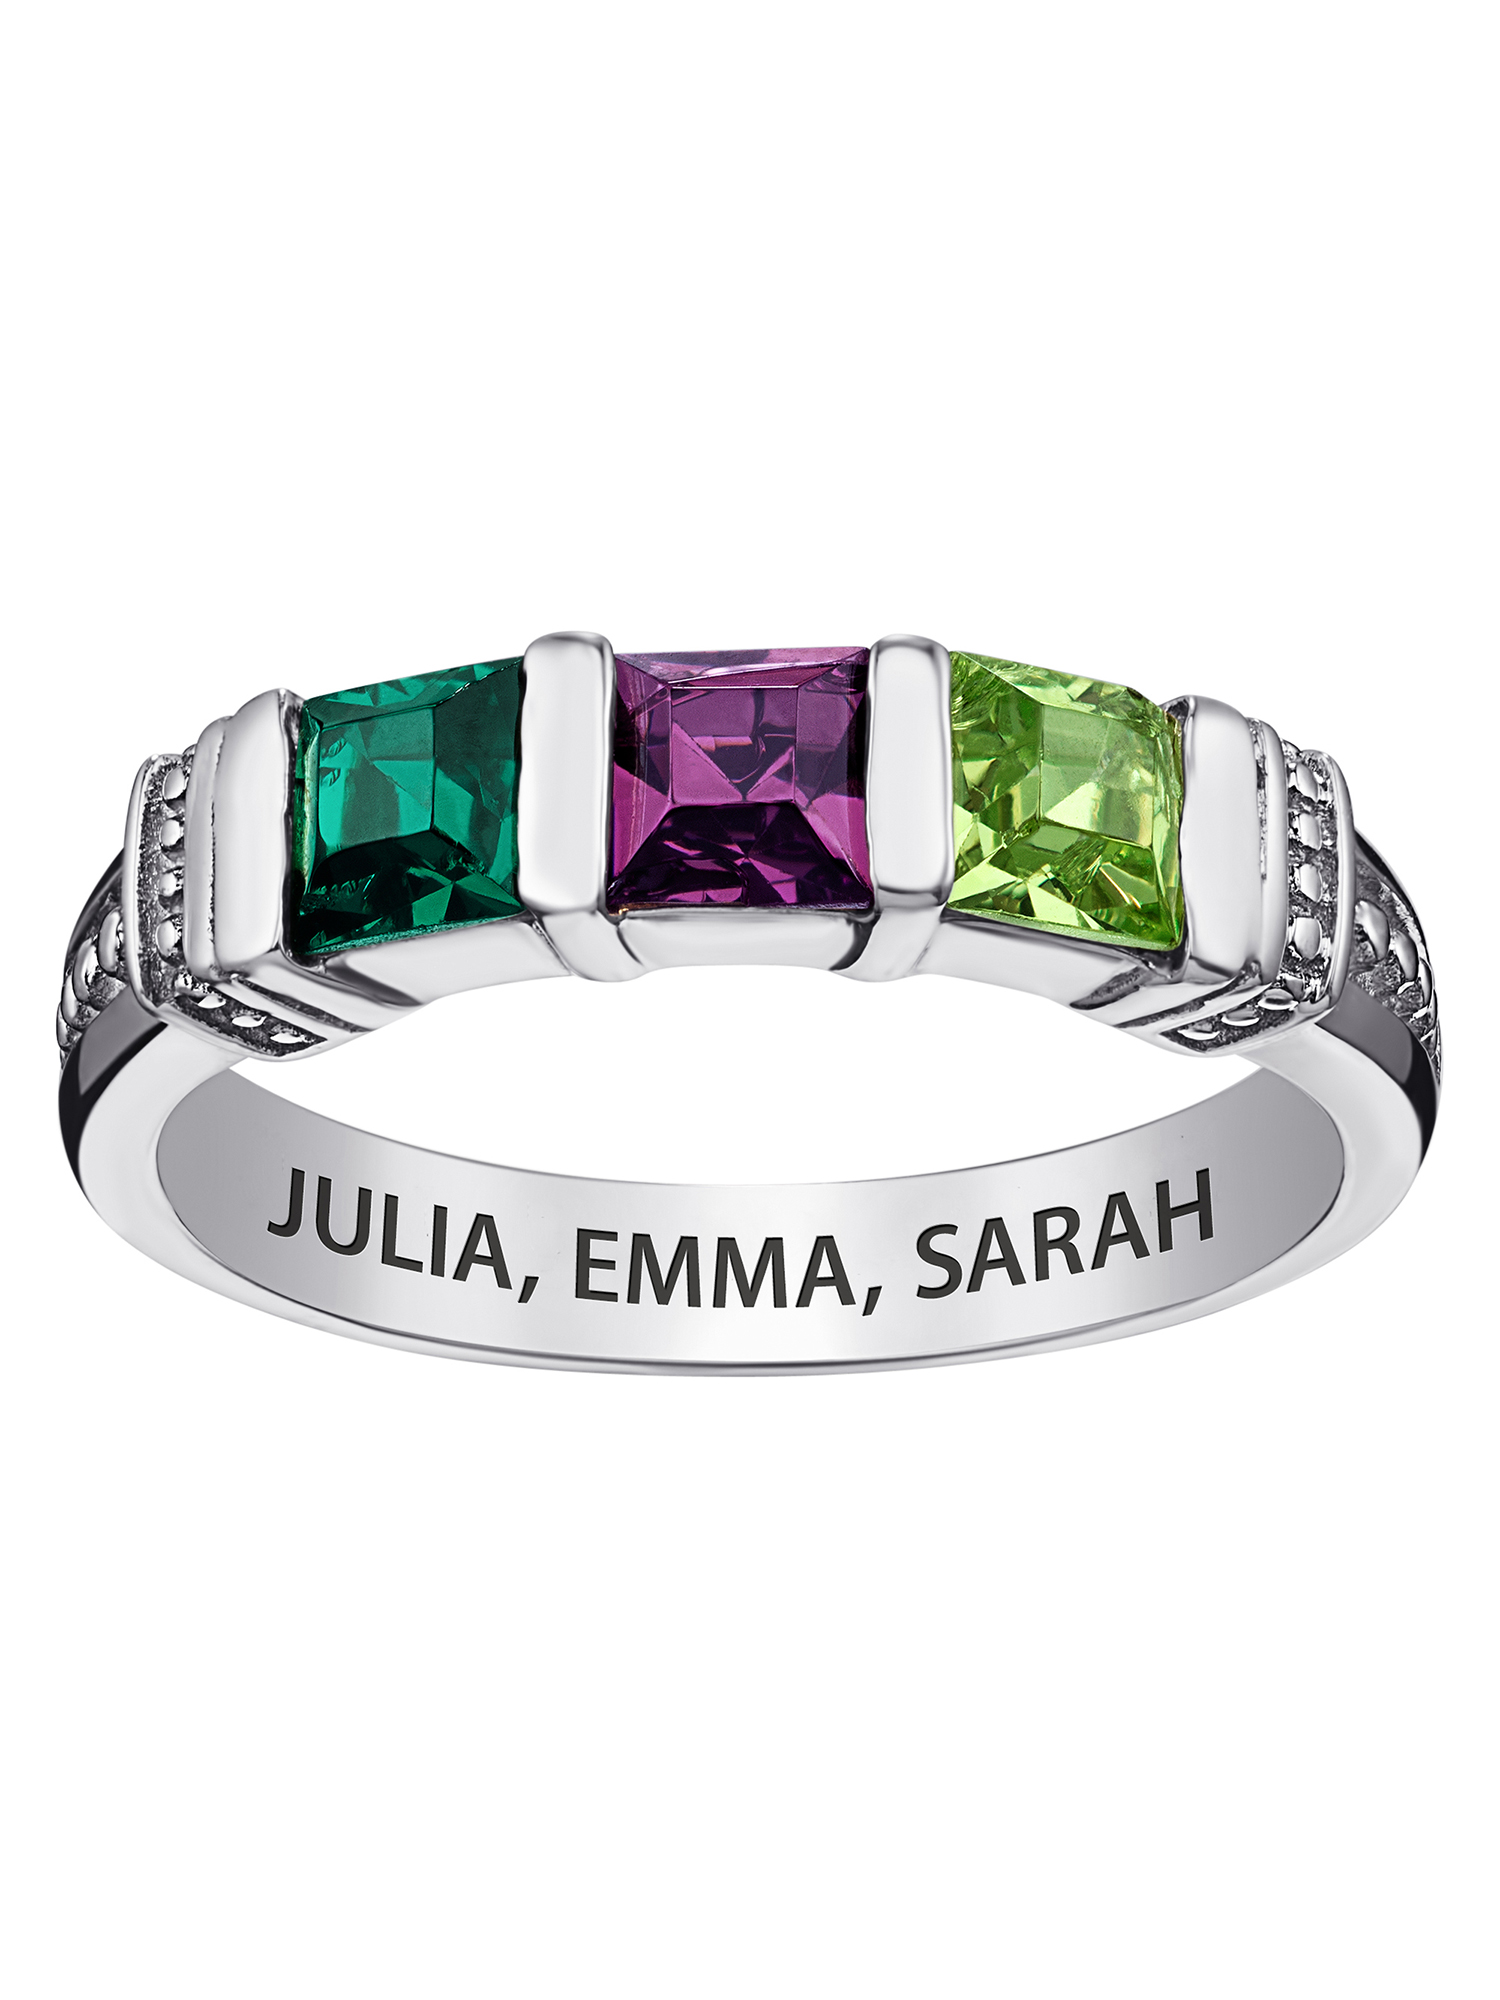 Personalized Sterling Silver Mother's Square Birthstone Ring 2-5 Stones